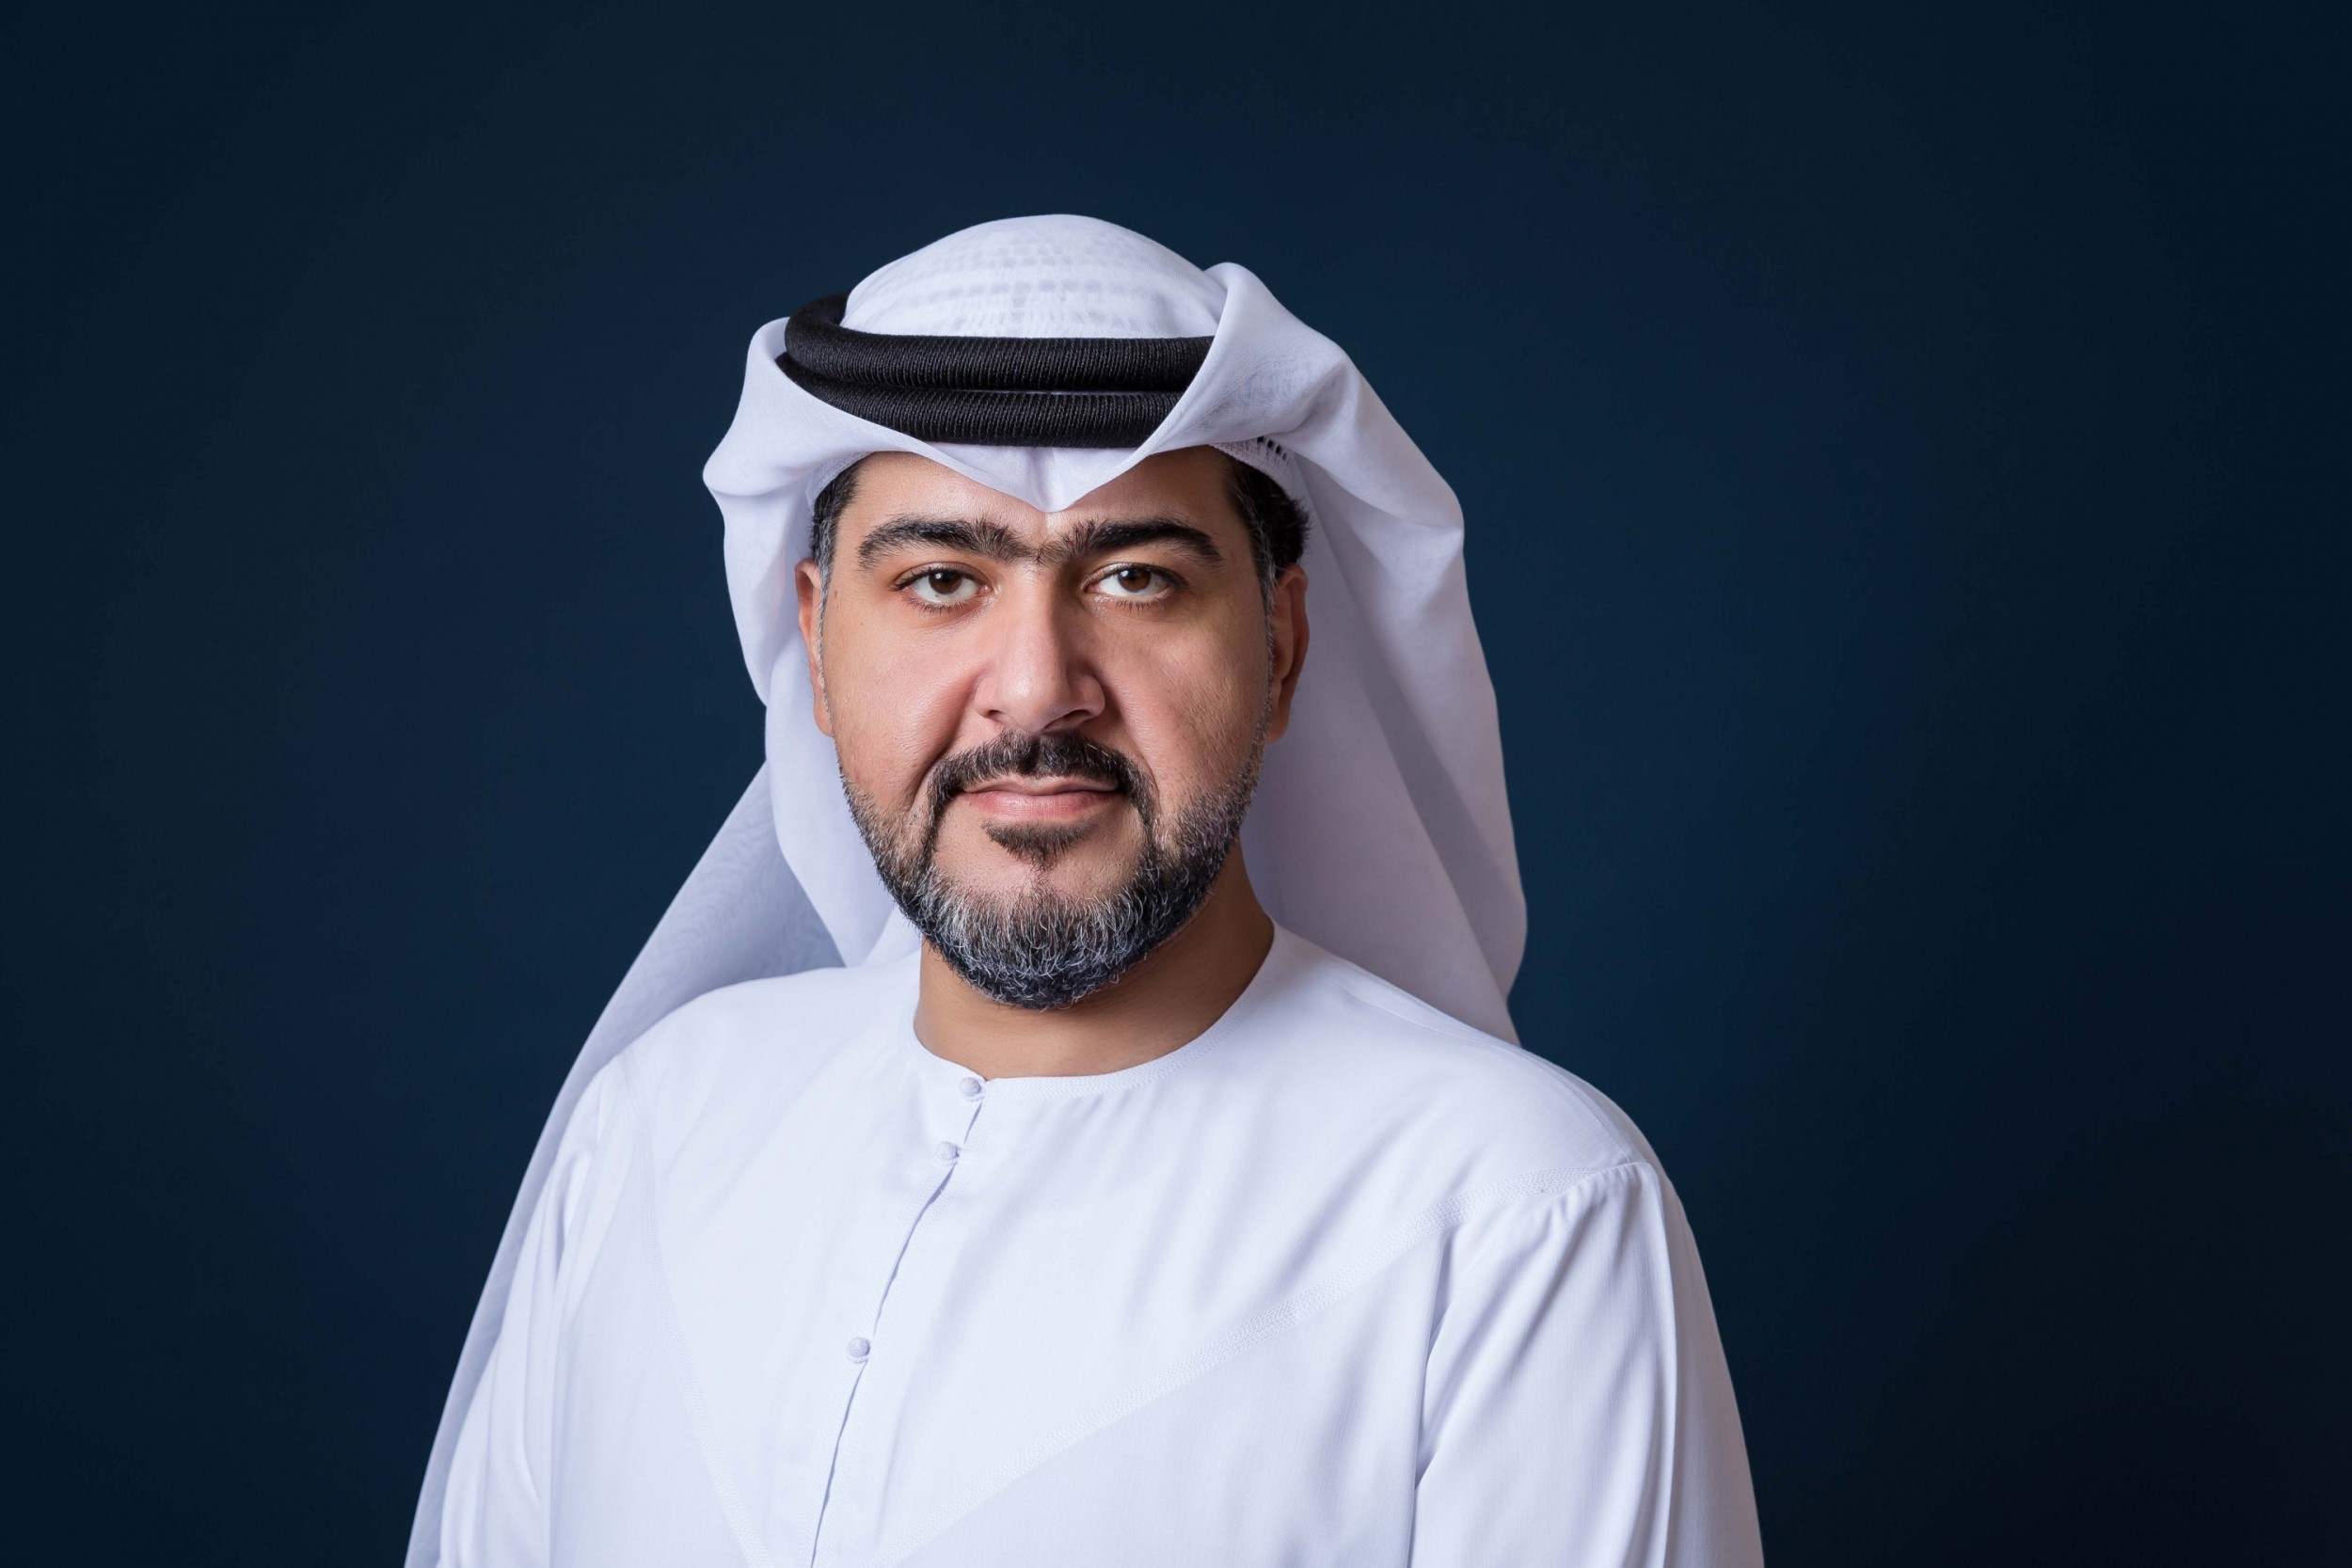 sandooq-al-watan-expands-scope-of-rethink-brine-challenge-to-include-innovative-medical-solutions-to-covid19